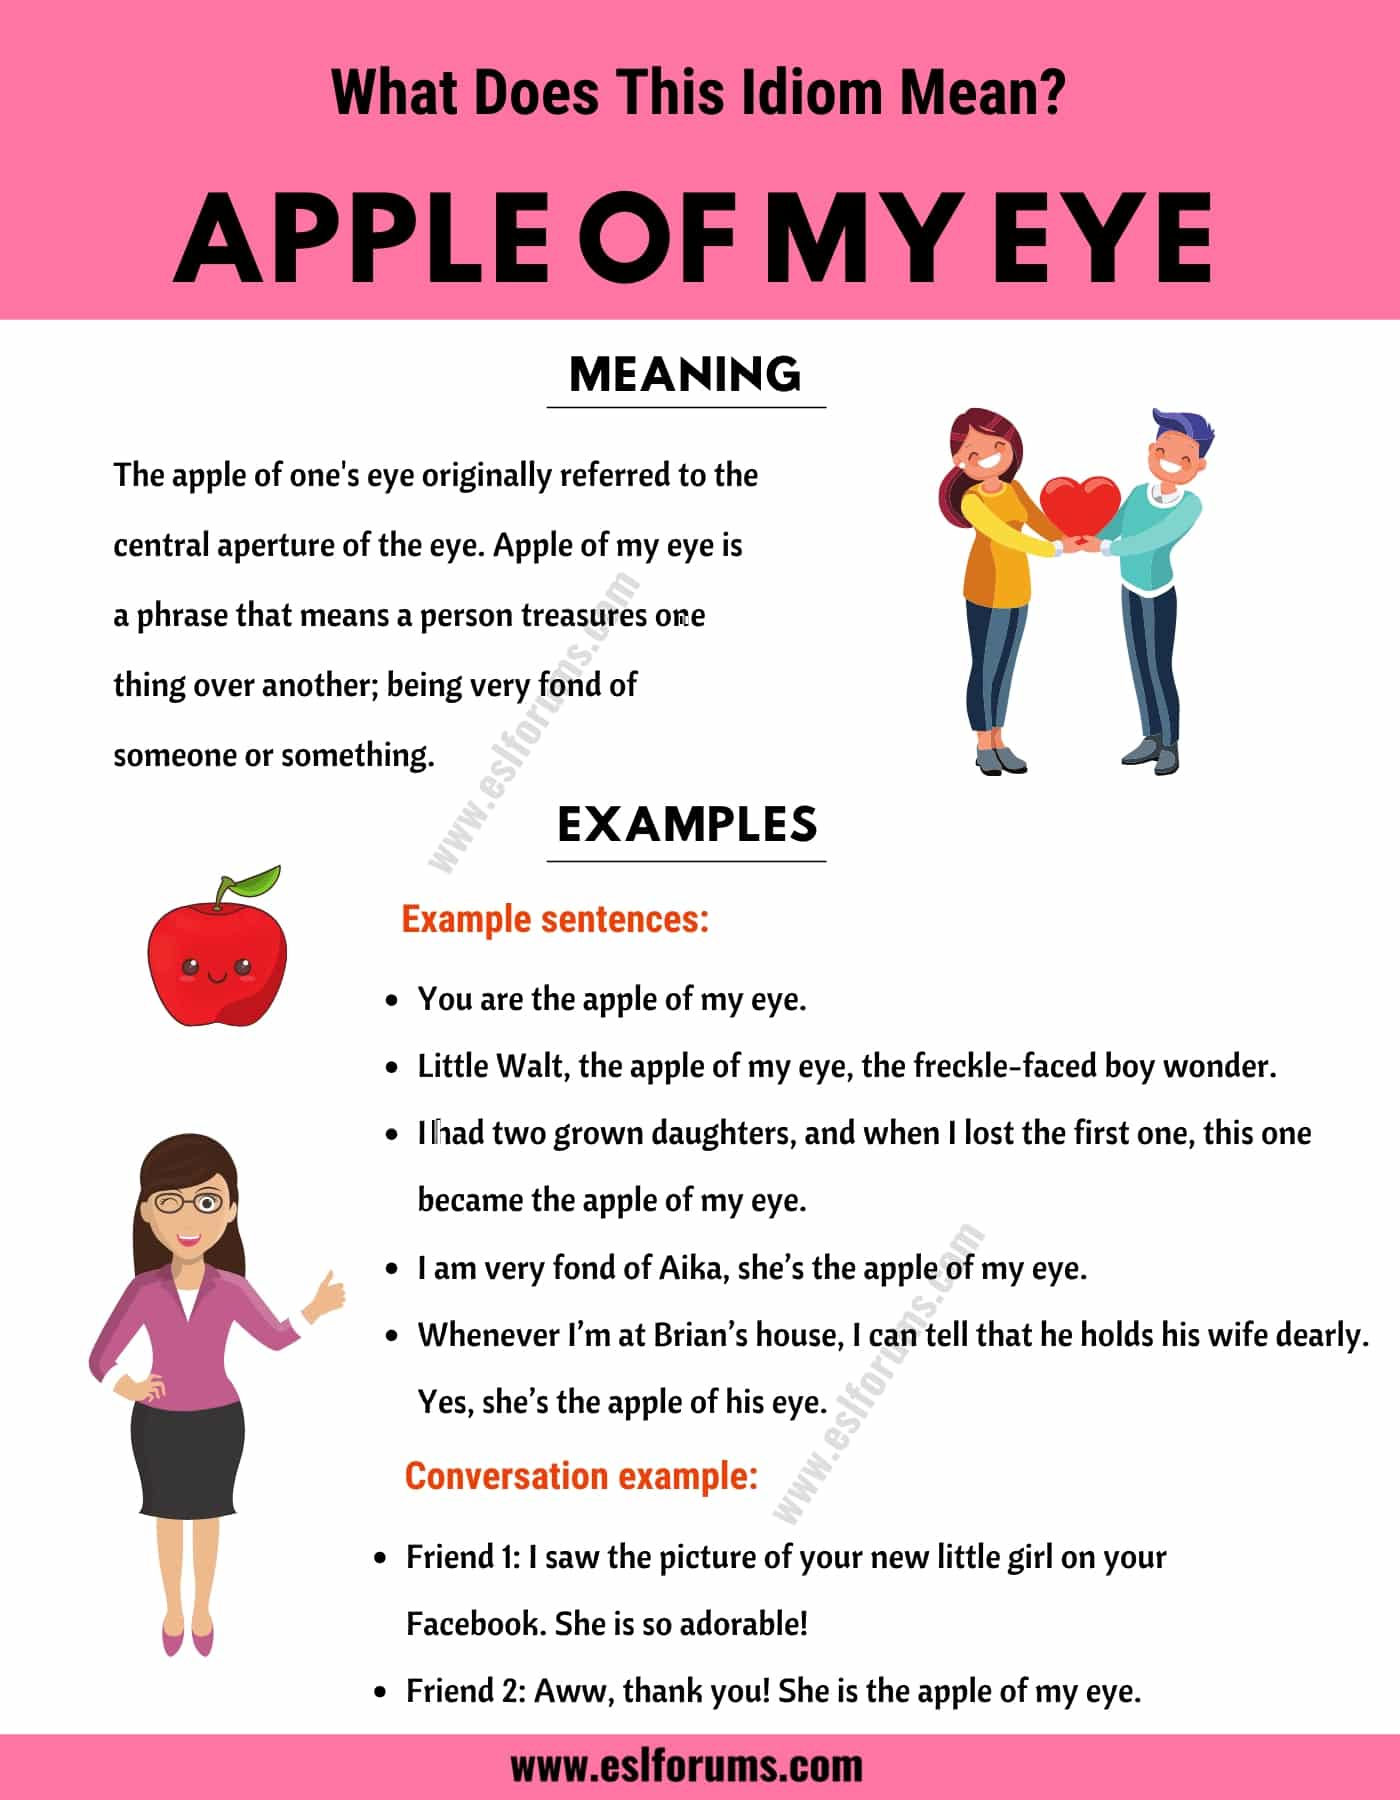 Apple of my Eye: What in The World Does This Trendy Idiom Mean?